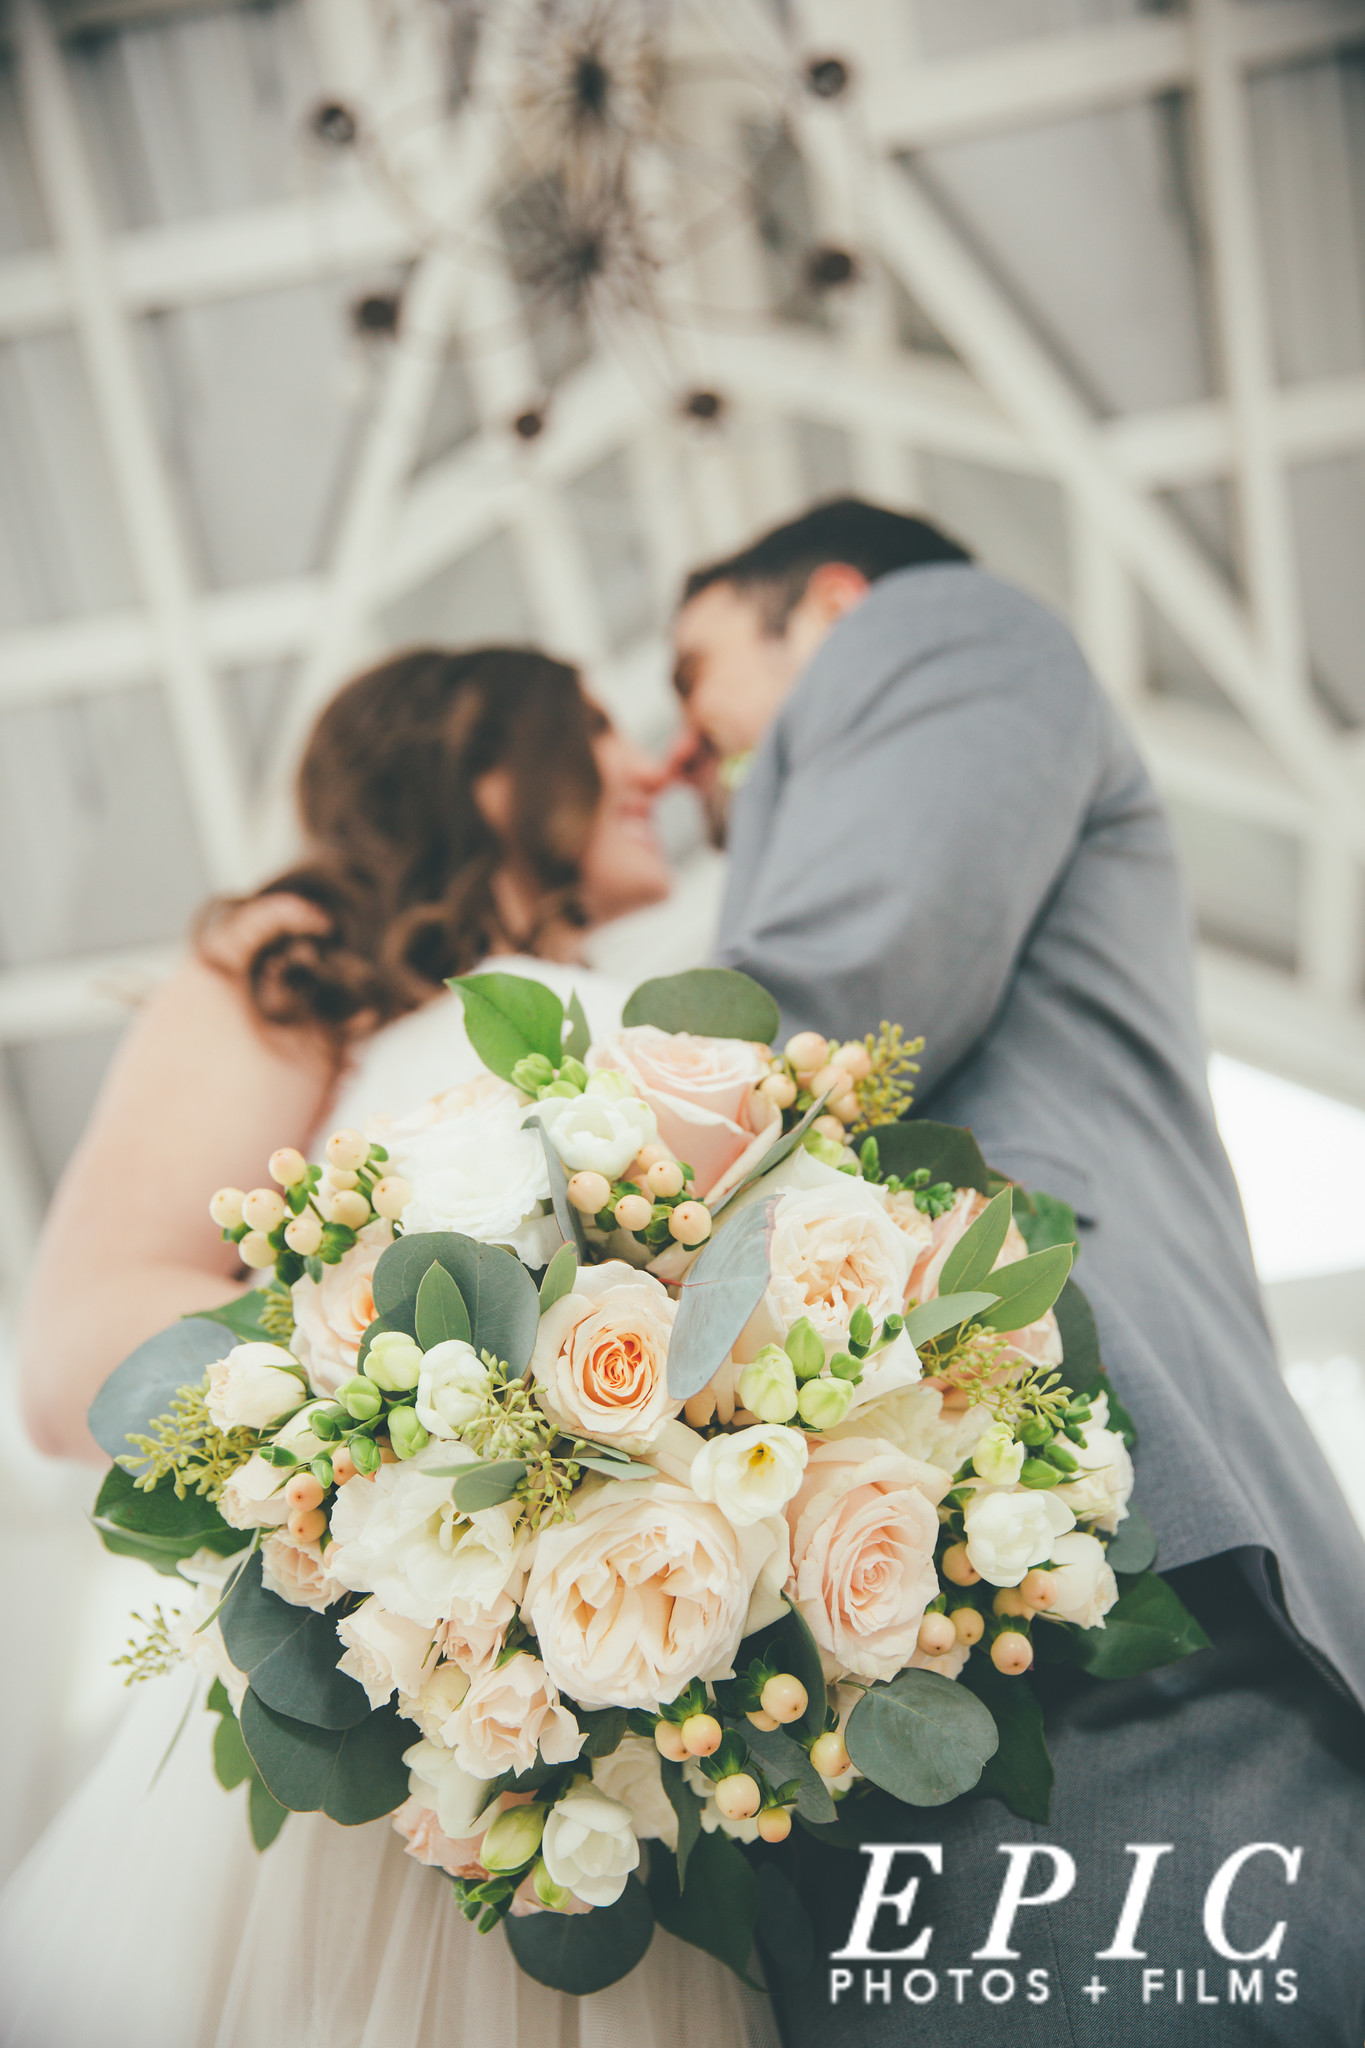 brides beige white and green bouquette, bride and groom touching noses in the blurred background